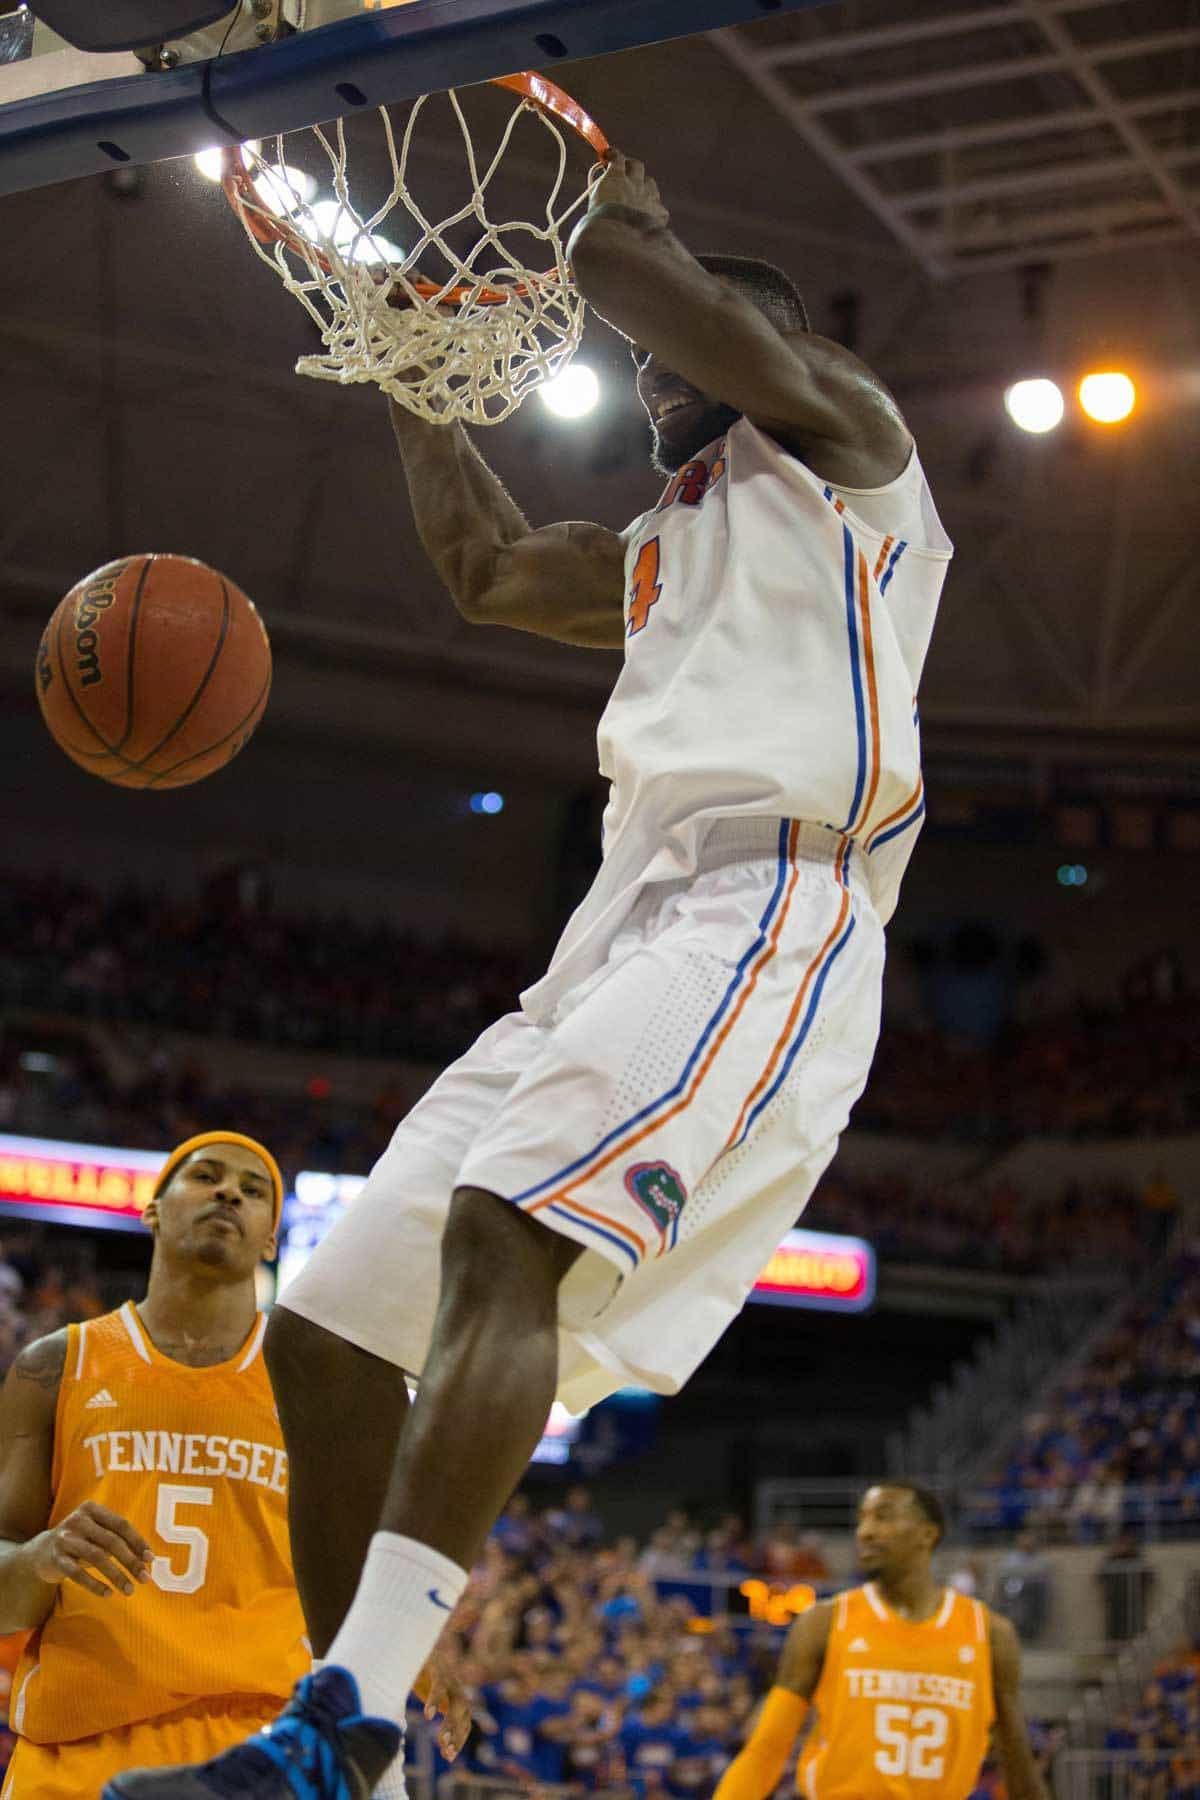 Jan 25, 2014; Gainesville, FL, USA; Florida Gators center Patric Young (4) dunks the ball during the game against the Tennessee Volunteers at the Stephen C. O'Connell Center. Photo: Rob Foldy-USA TODAY Sports